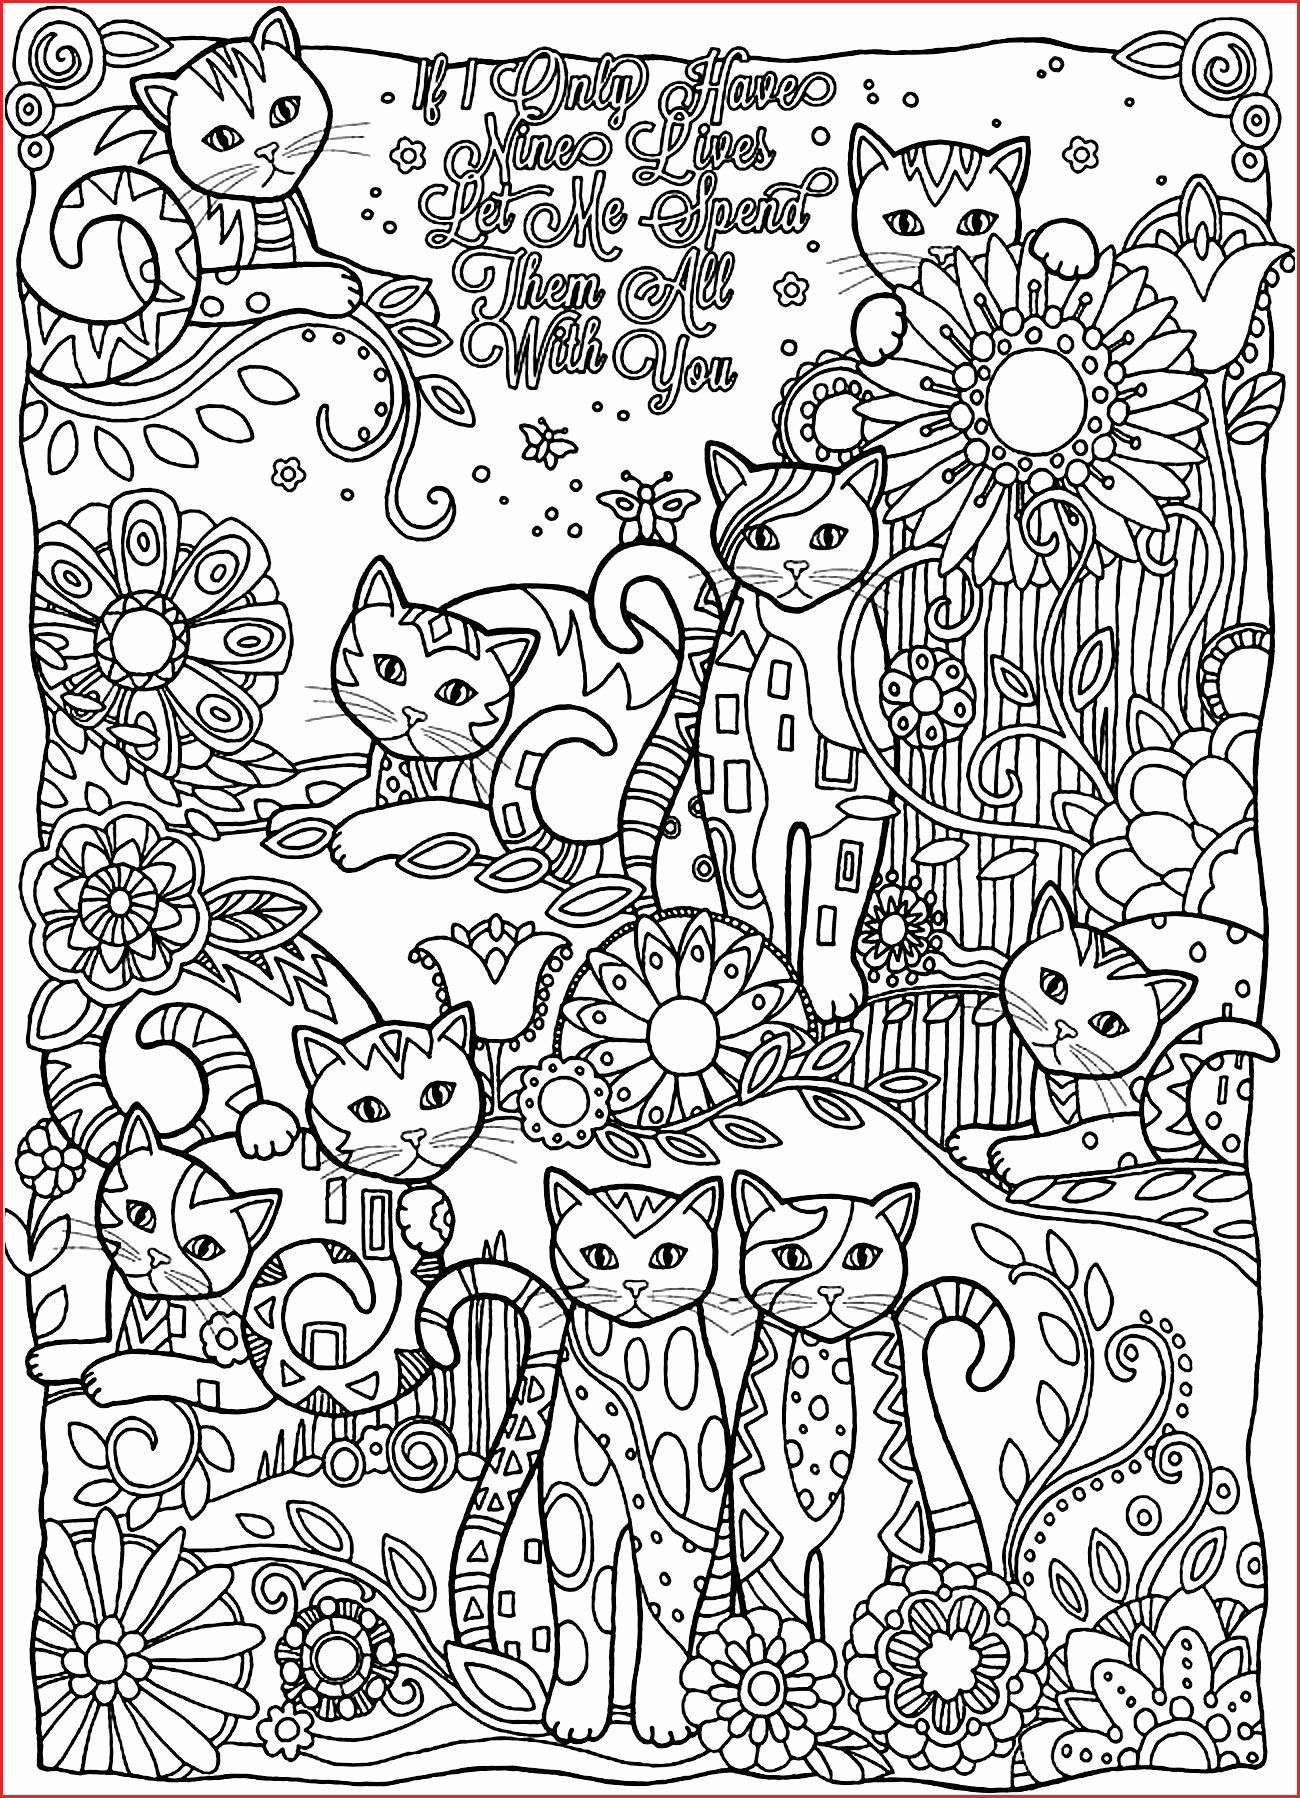 Alphabet Coloring Cards Awesome Surprising Easter Coloring Pages Free Printable Image Unicorn Coloring Pages Coloring Pages Inspirational Bear Coloring Pages